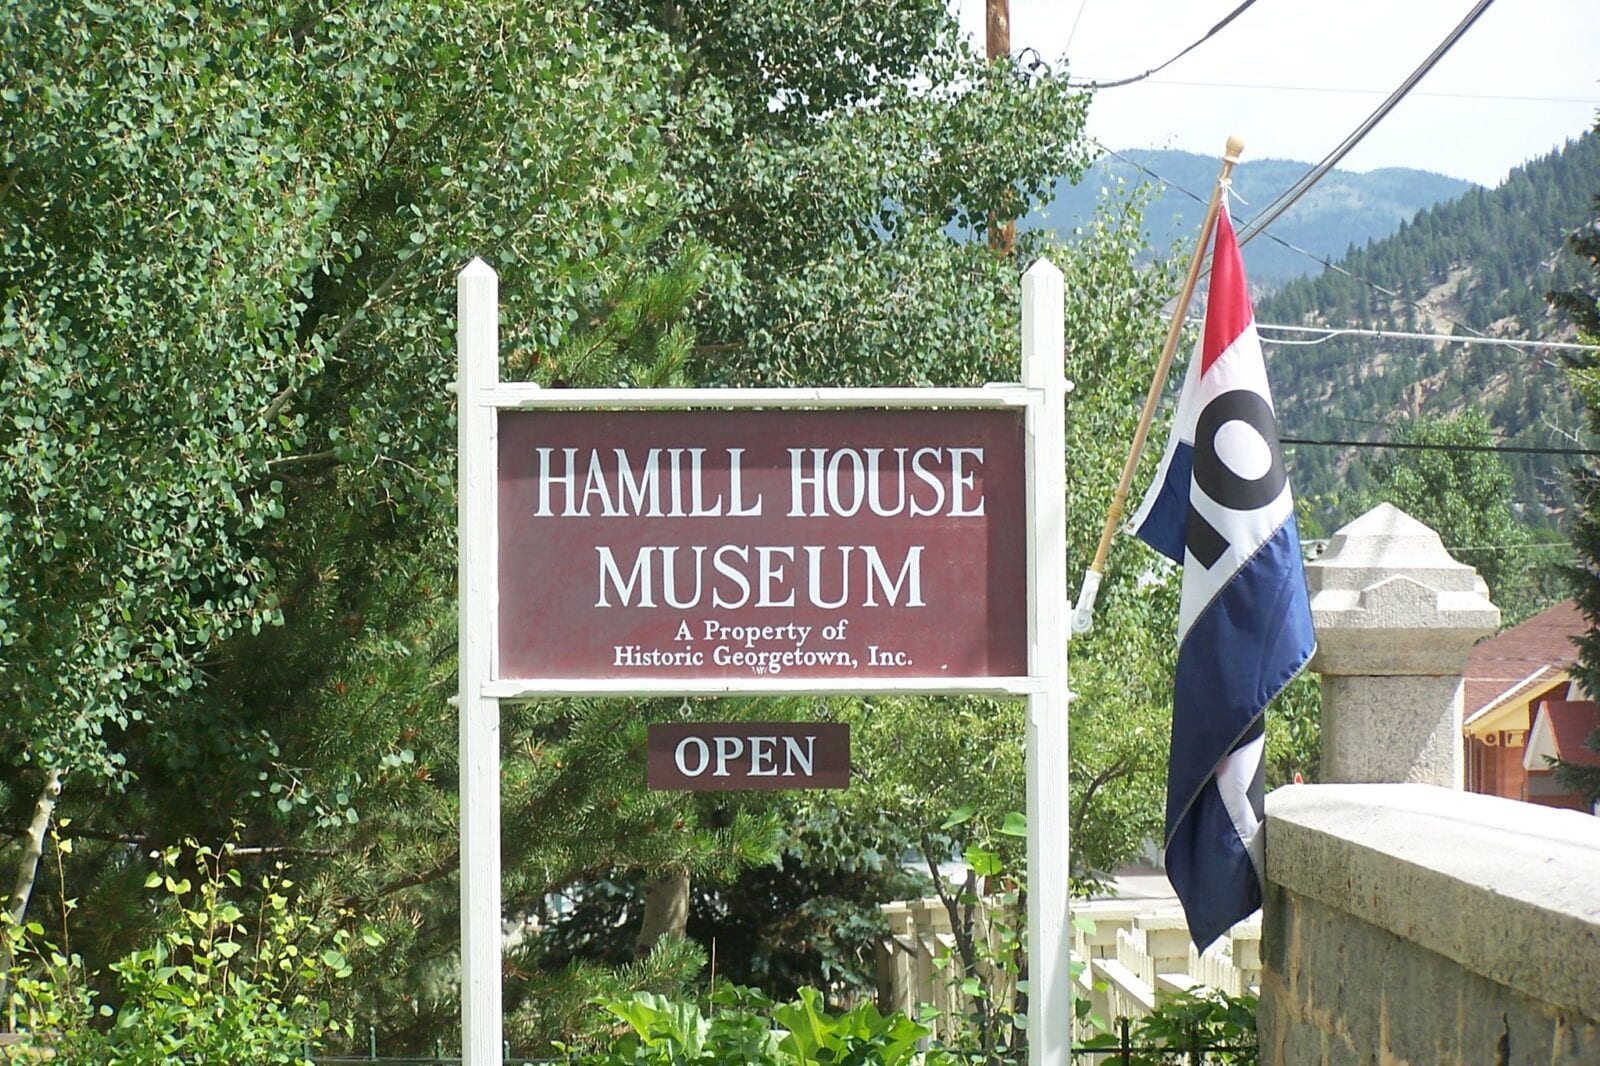 Image of the welcome sign at the Hamill House Museum in Georgetown, Colorado